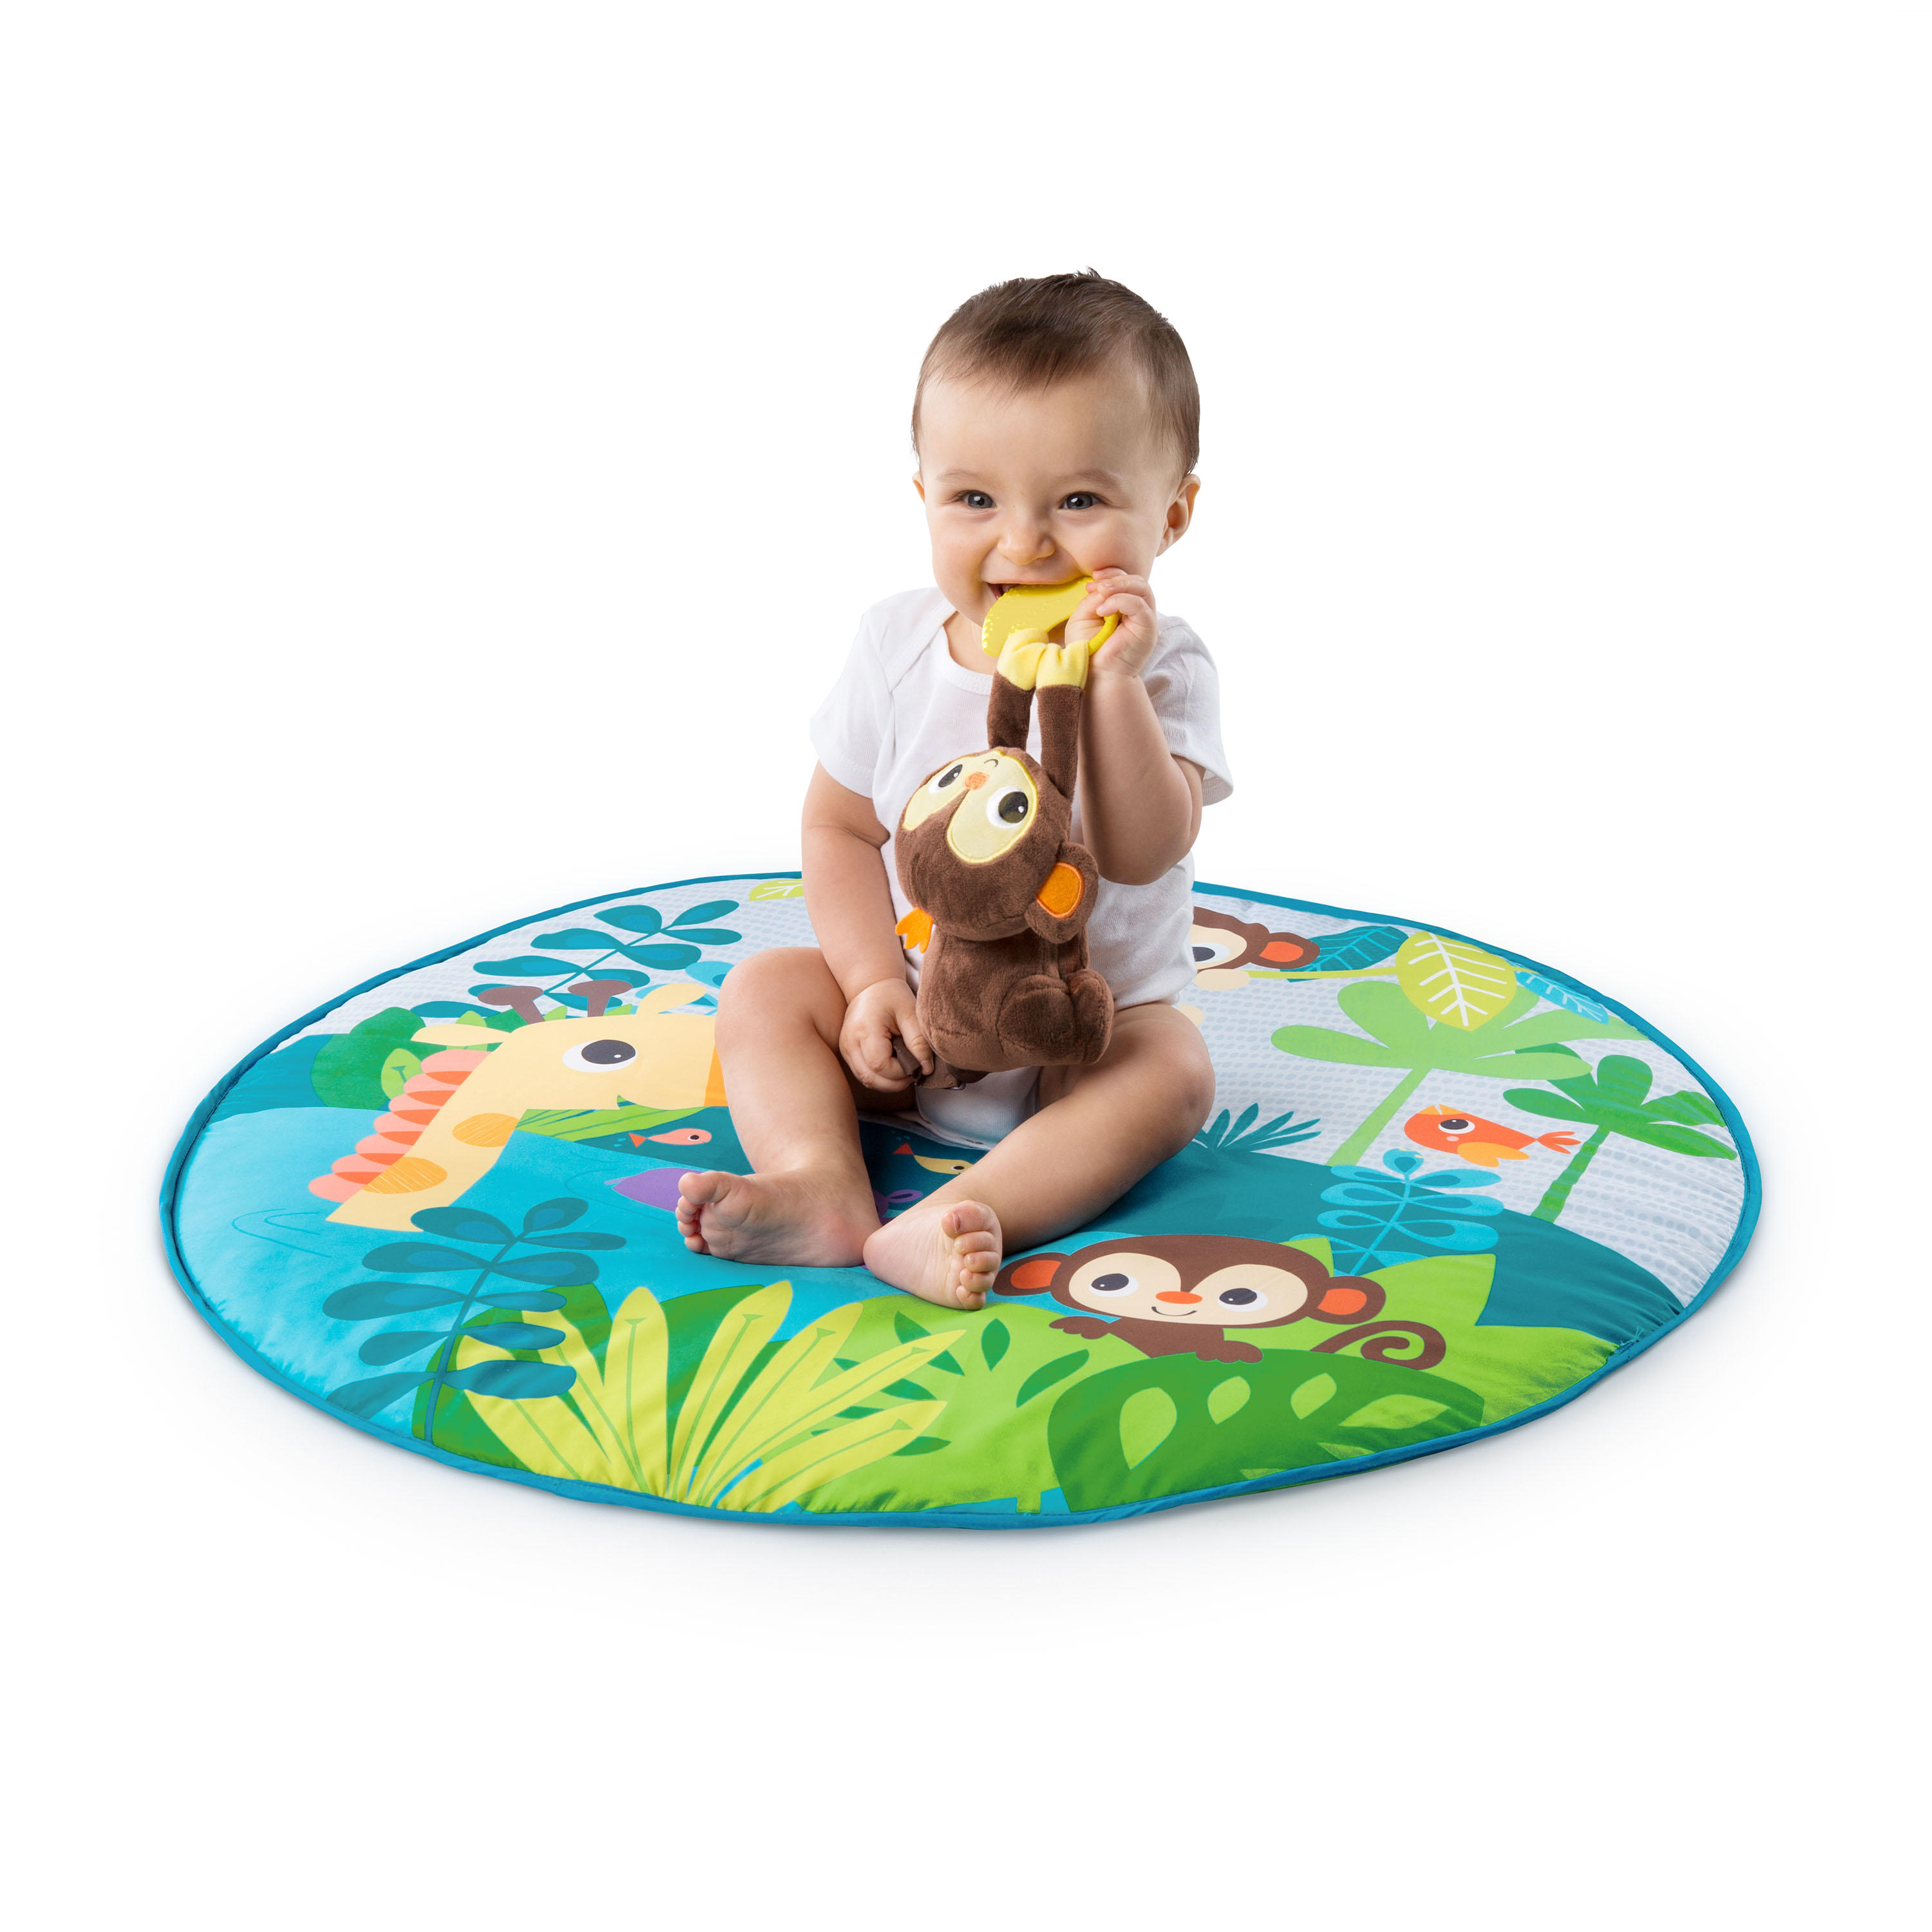 Monkey Business Musical Activity Gym™